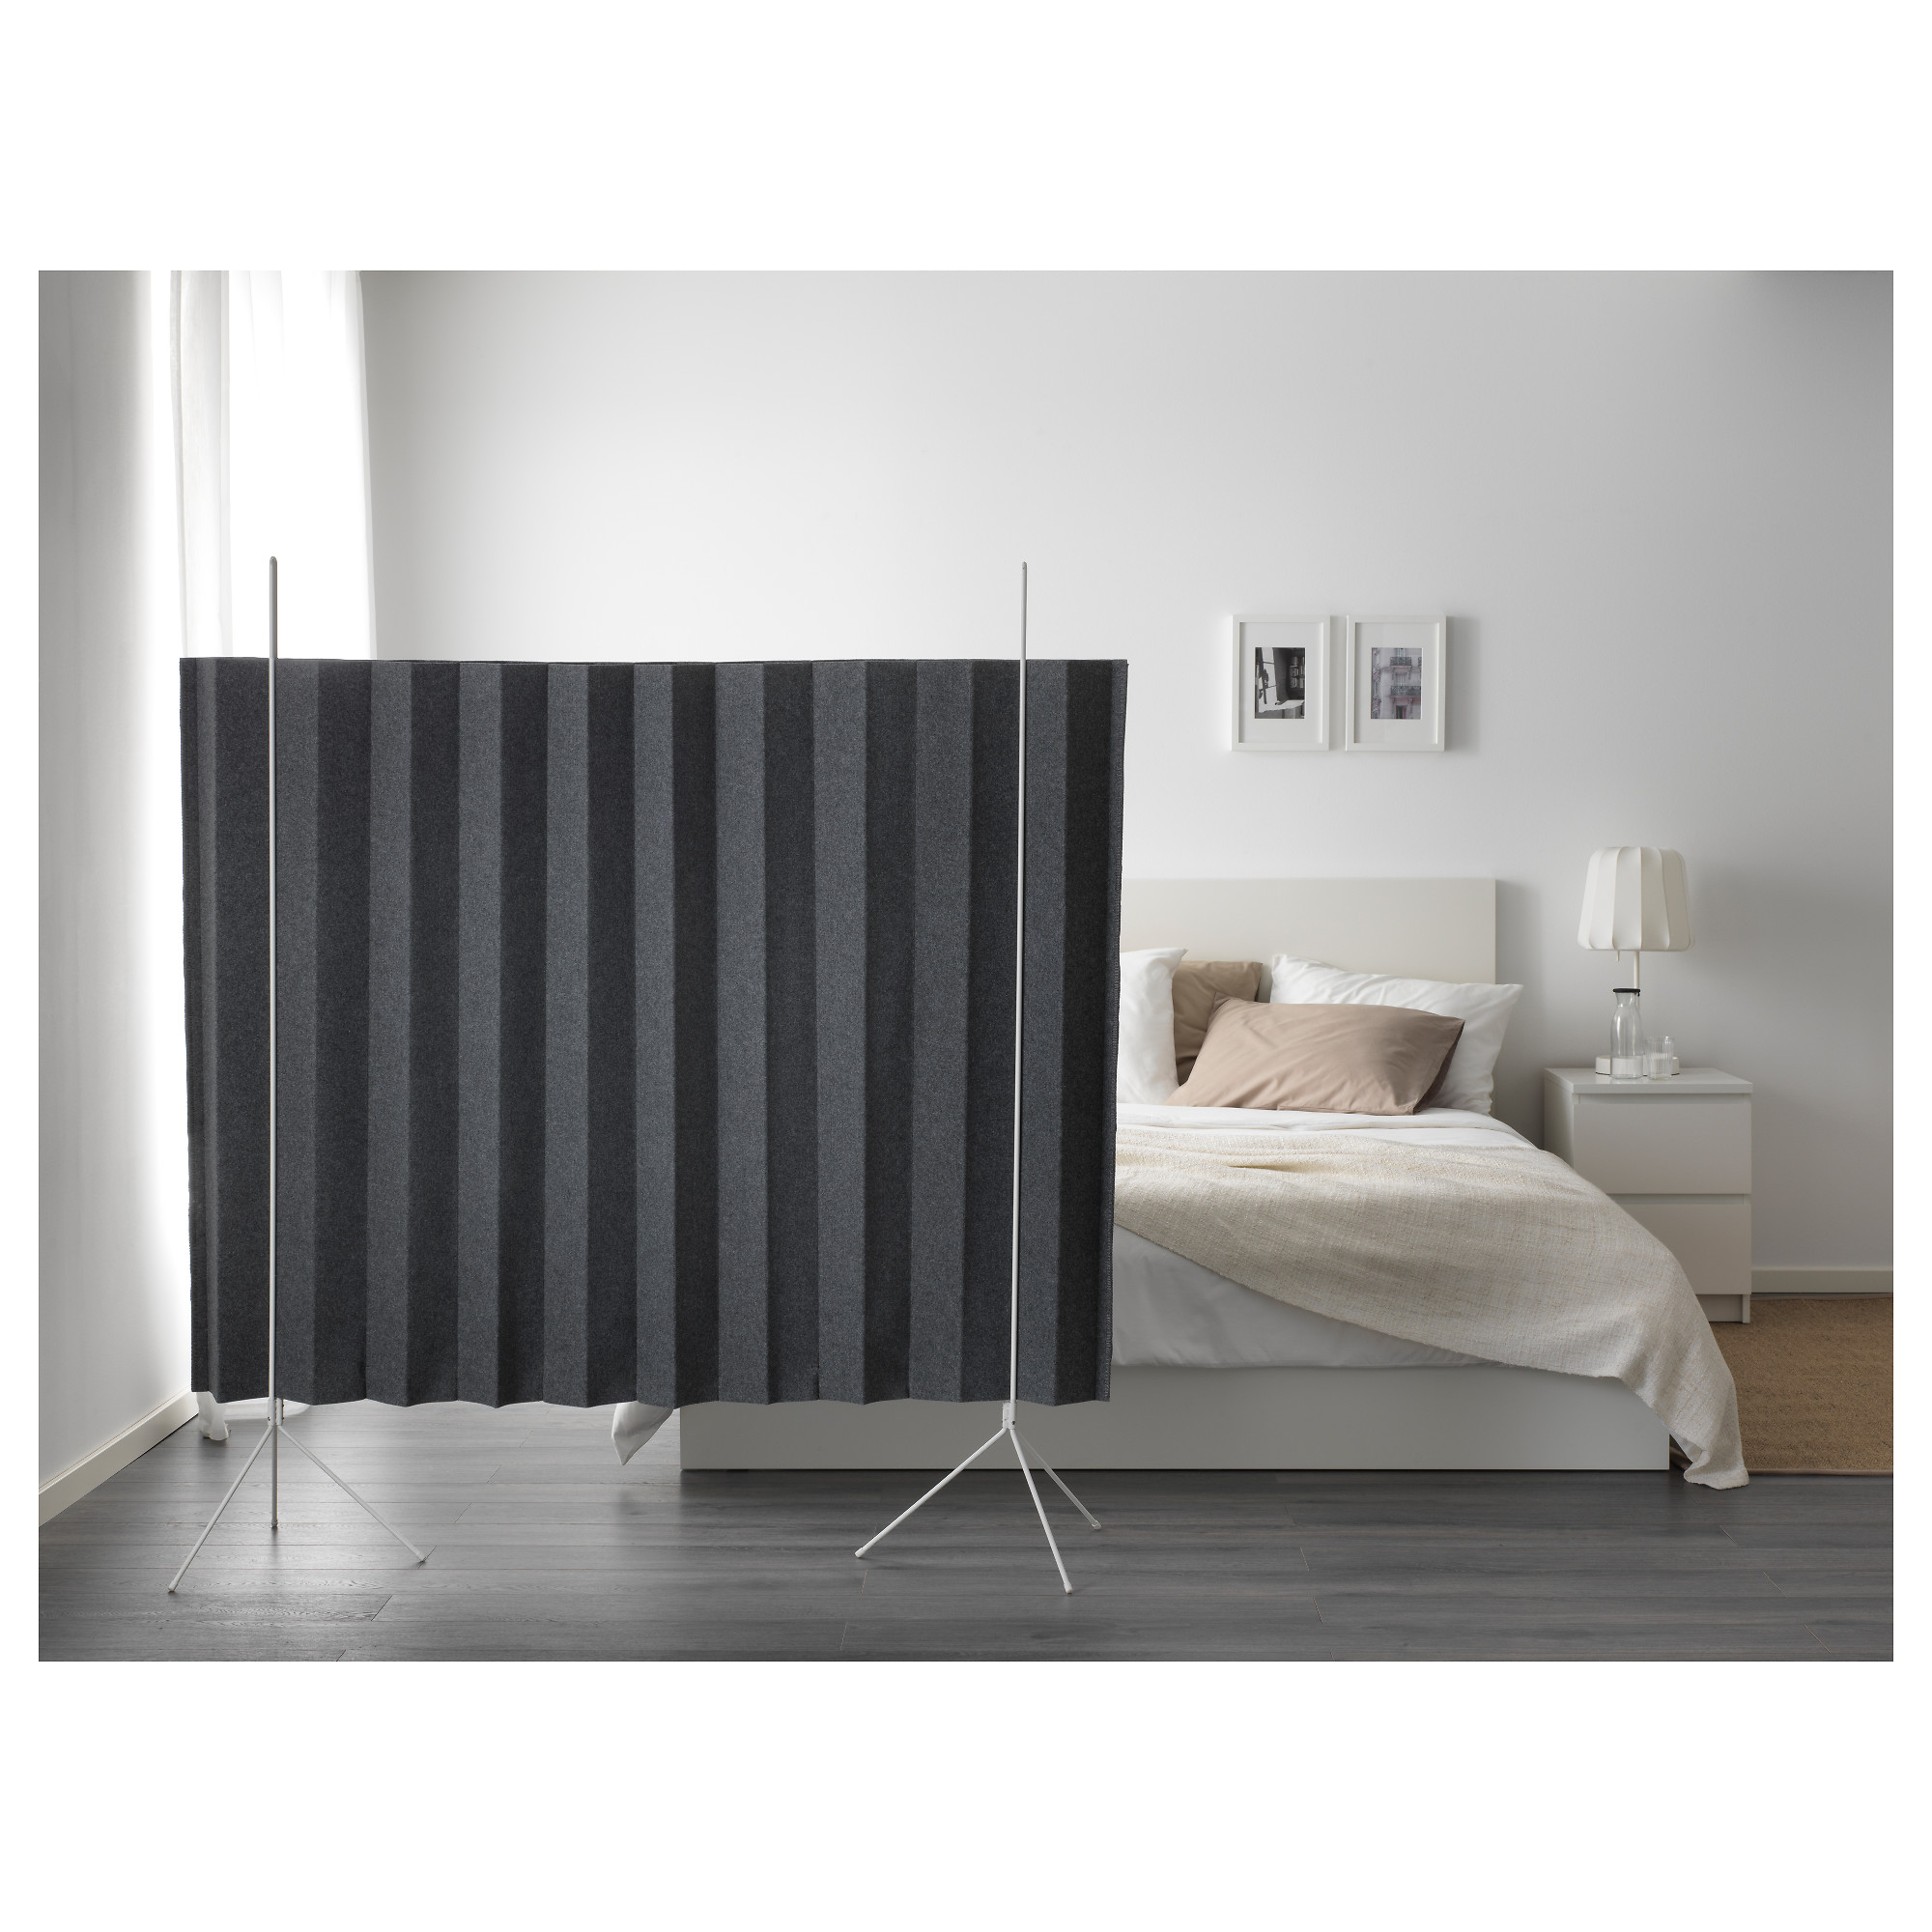 Great Room Separators Ikea for Any Room in Your Home: Room Separators Ideas | Room Separators Ikea | Room Divider Screens